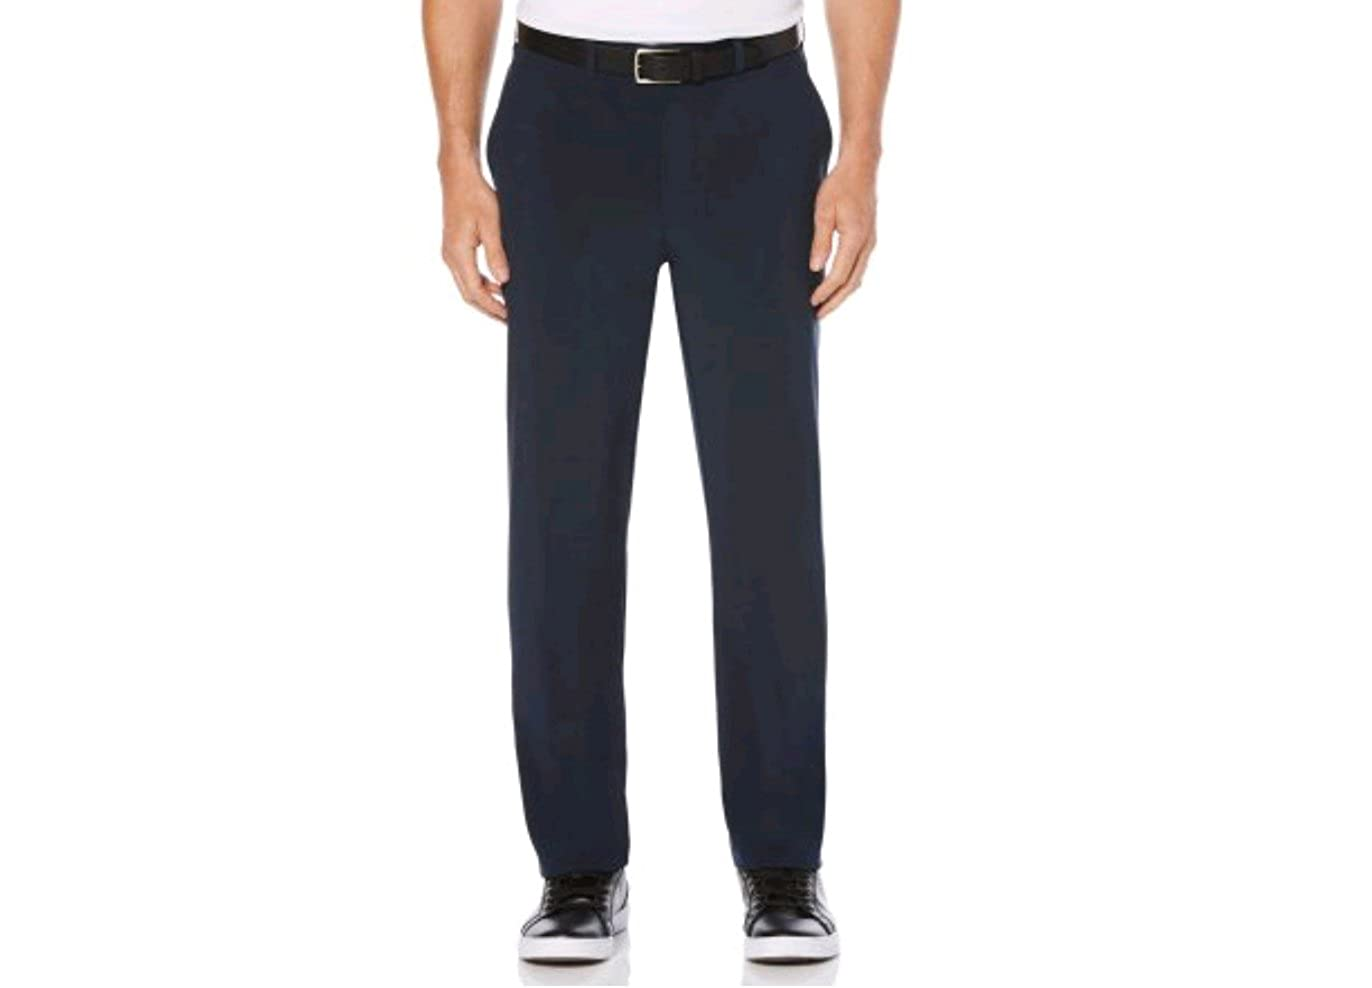 Ben Hogan Men's Performance Active Flex Waistband Flat-Front Pants